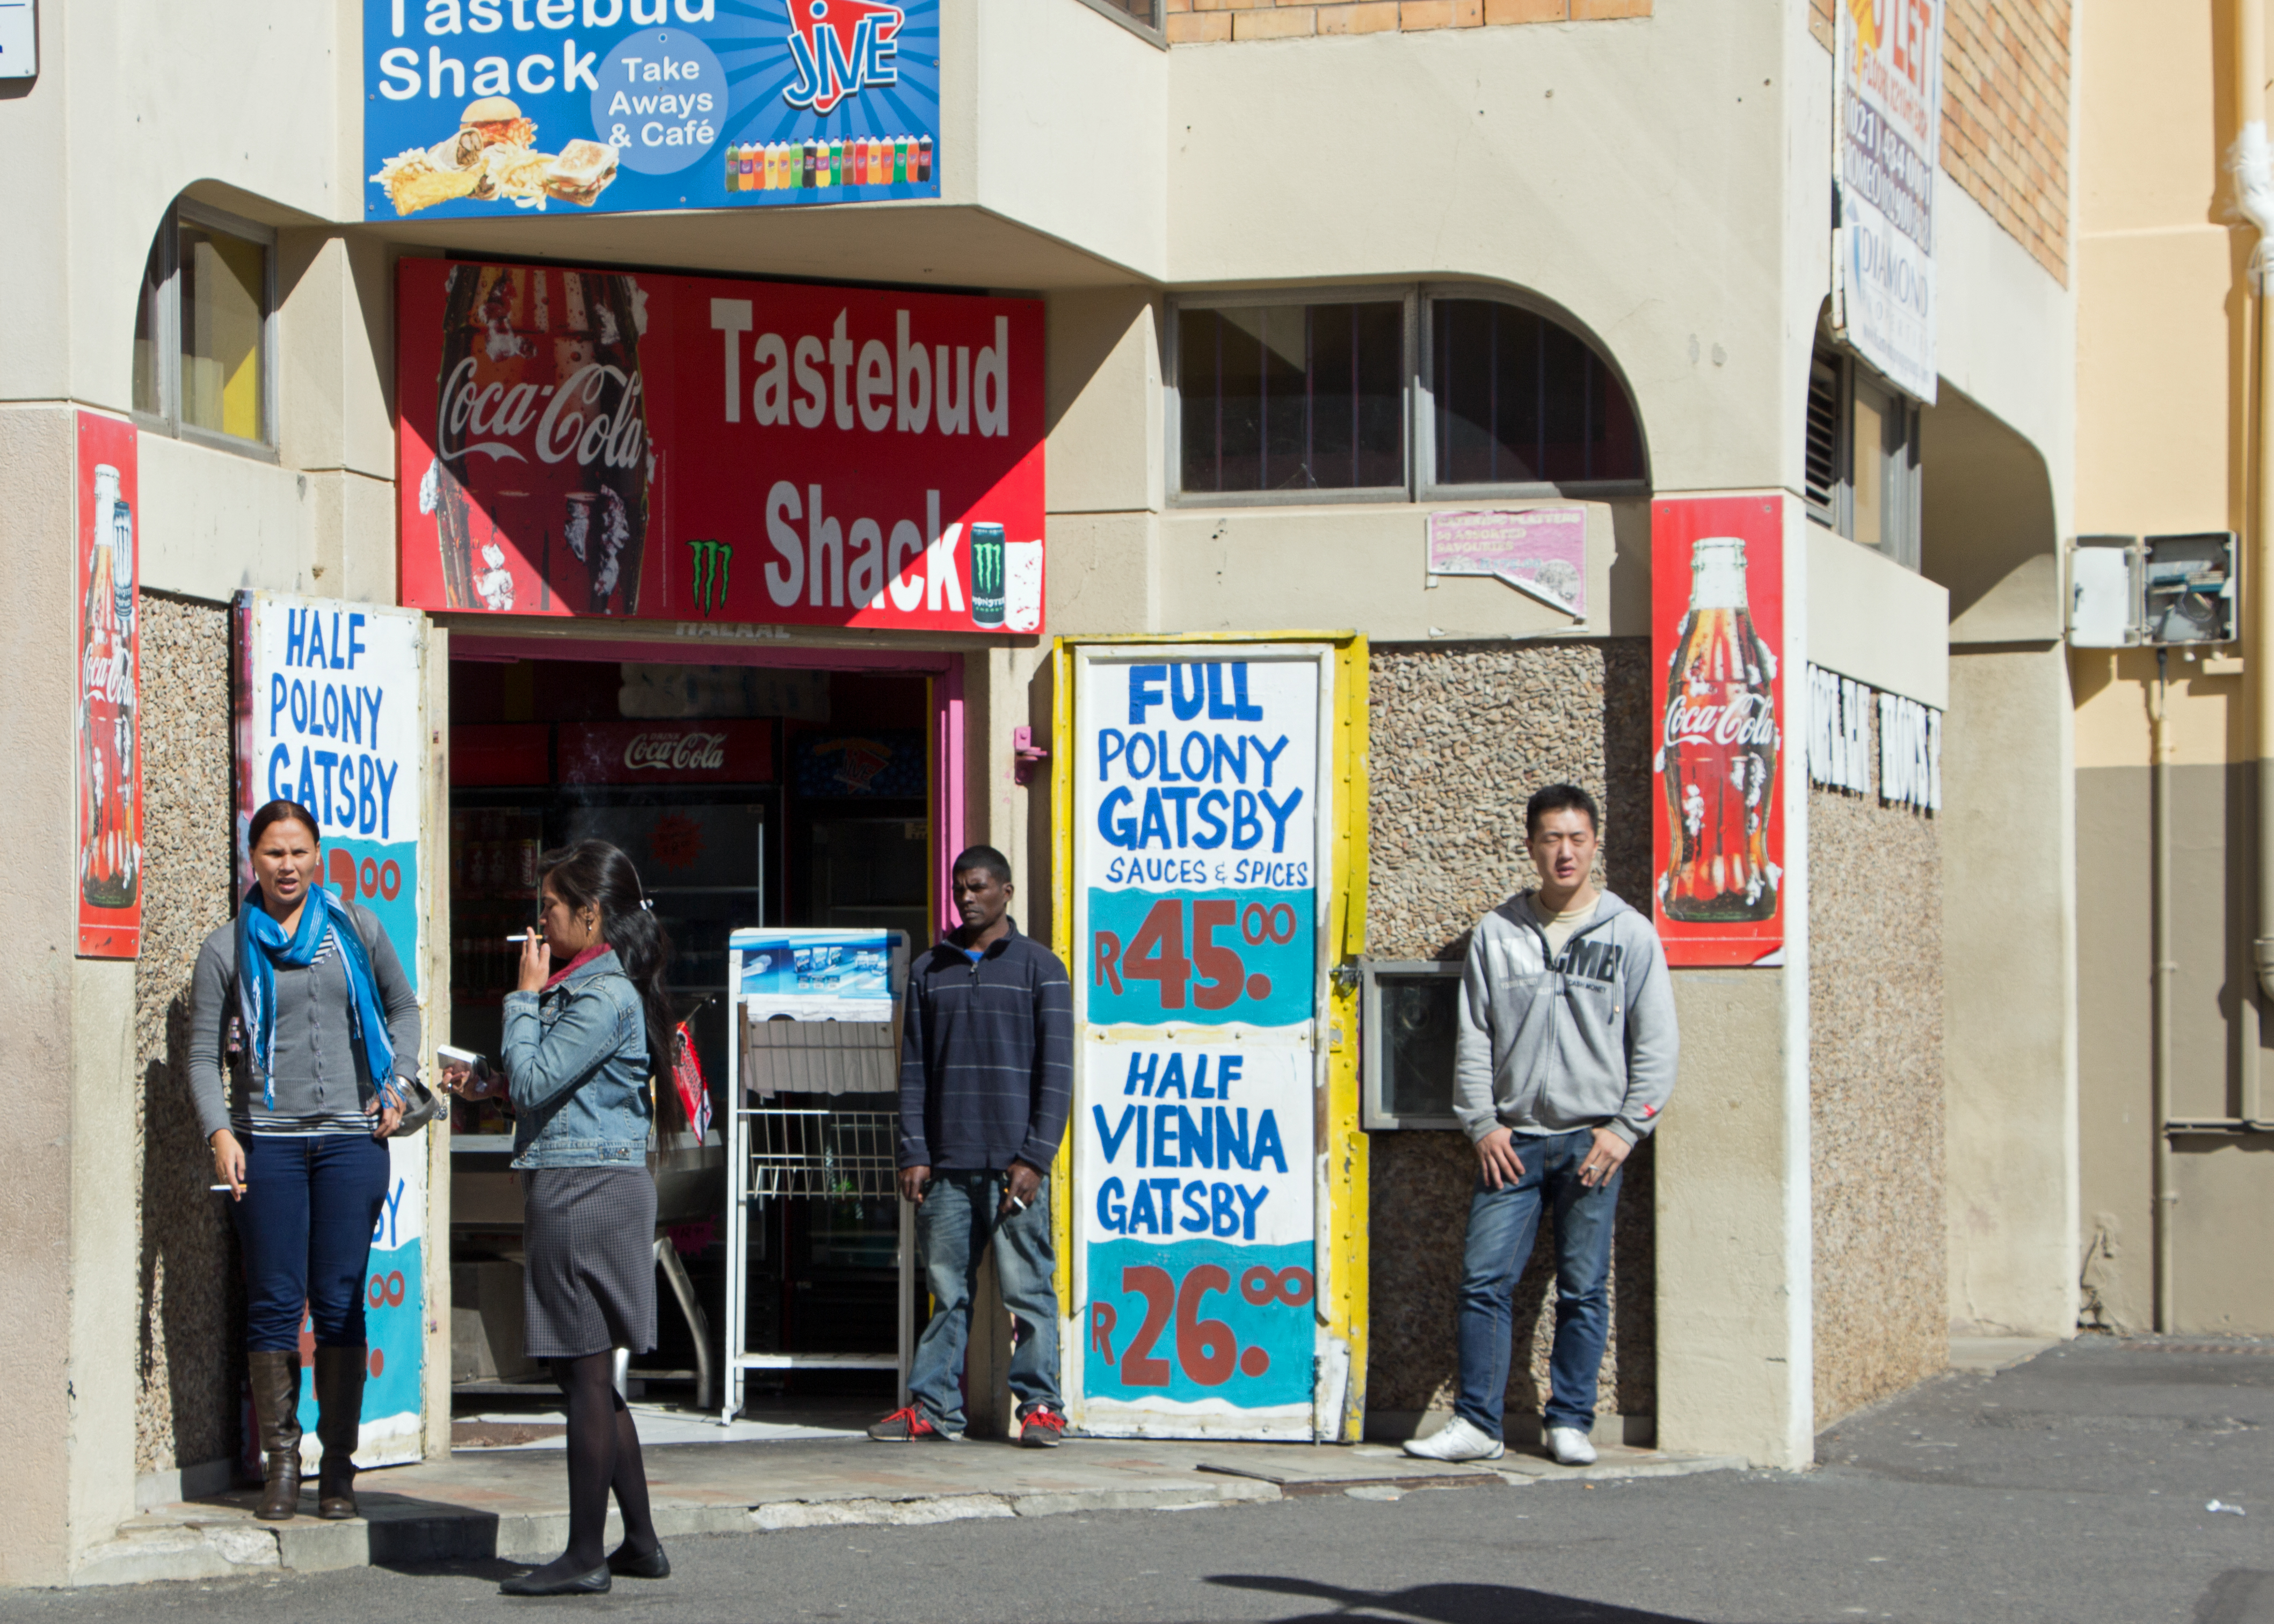 A store in Cape Town, South Africa with signage for Gatsby sandwiches